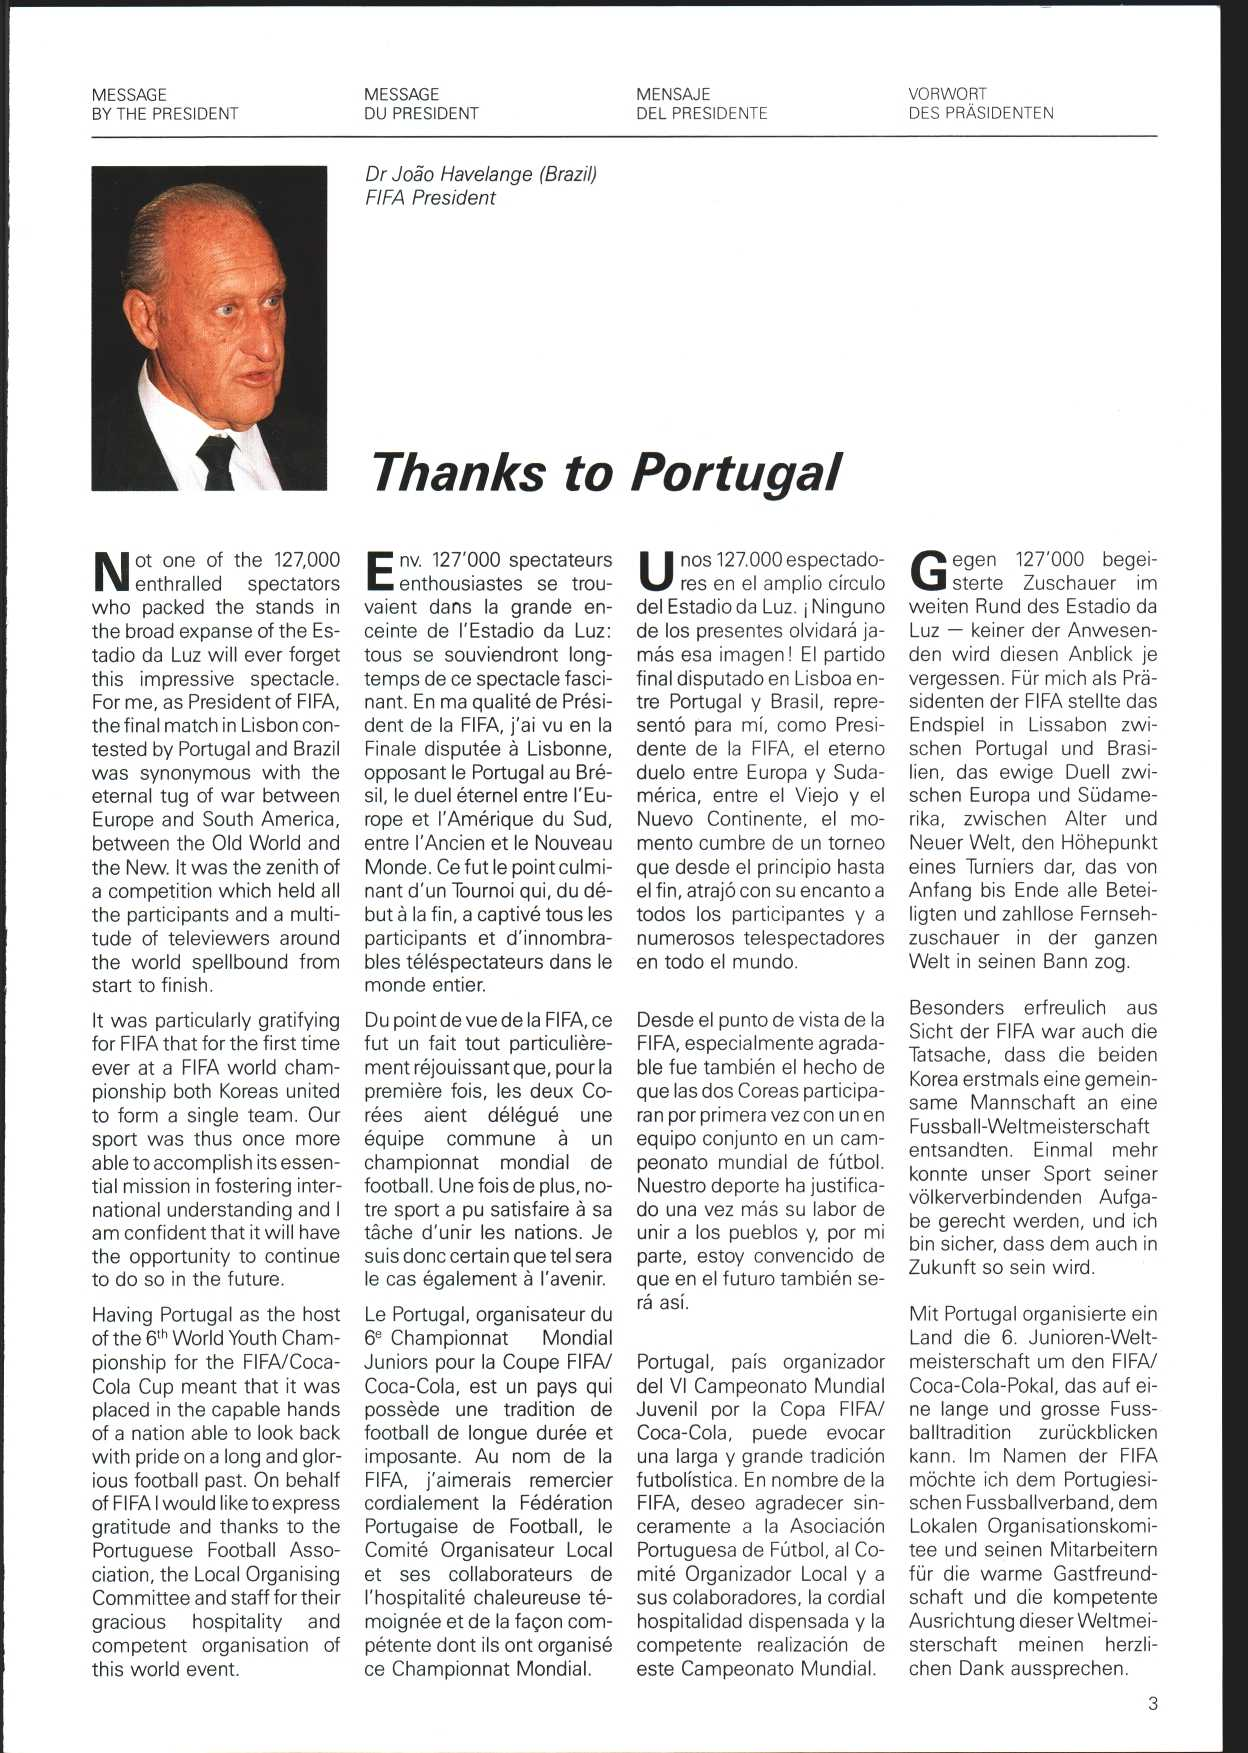 MESSAGE BY THE PRESIDENT MESSAGE DU PRESIDENT MENSAJE DEL PRESIDENTE VORWORT DES PRÄSIDENTEN Dr Joáo Havelange (Brazil) FIFA President Thanks to Portugal N of one of the 127,000 enthralled spectators